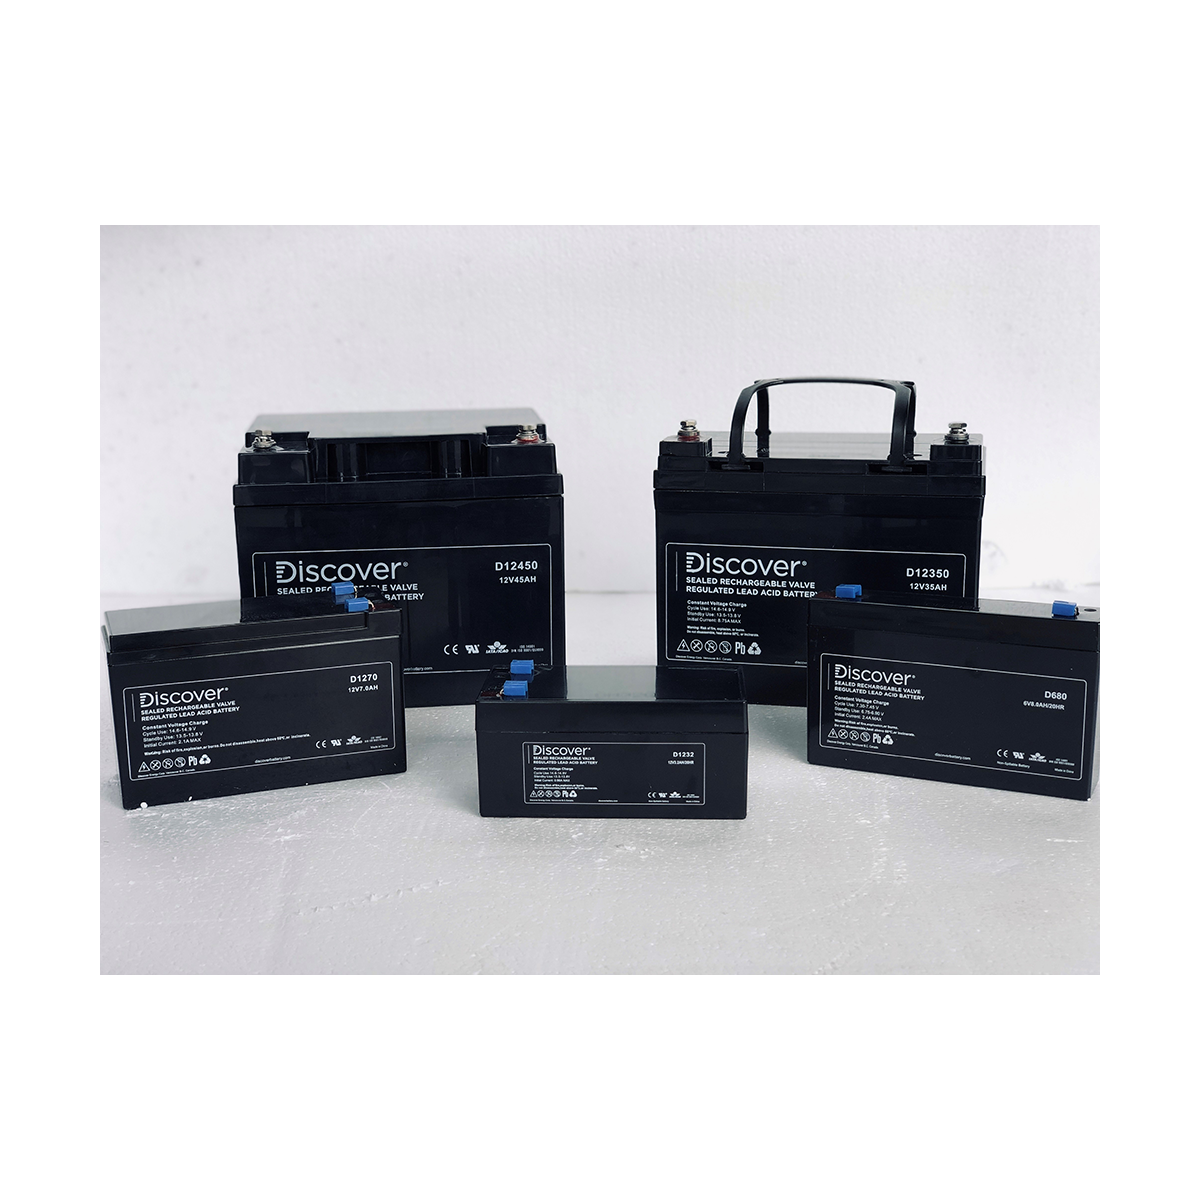 DISCOVER 12V 12AH AGM BATTERY